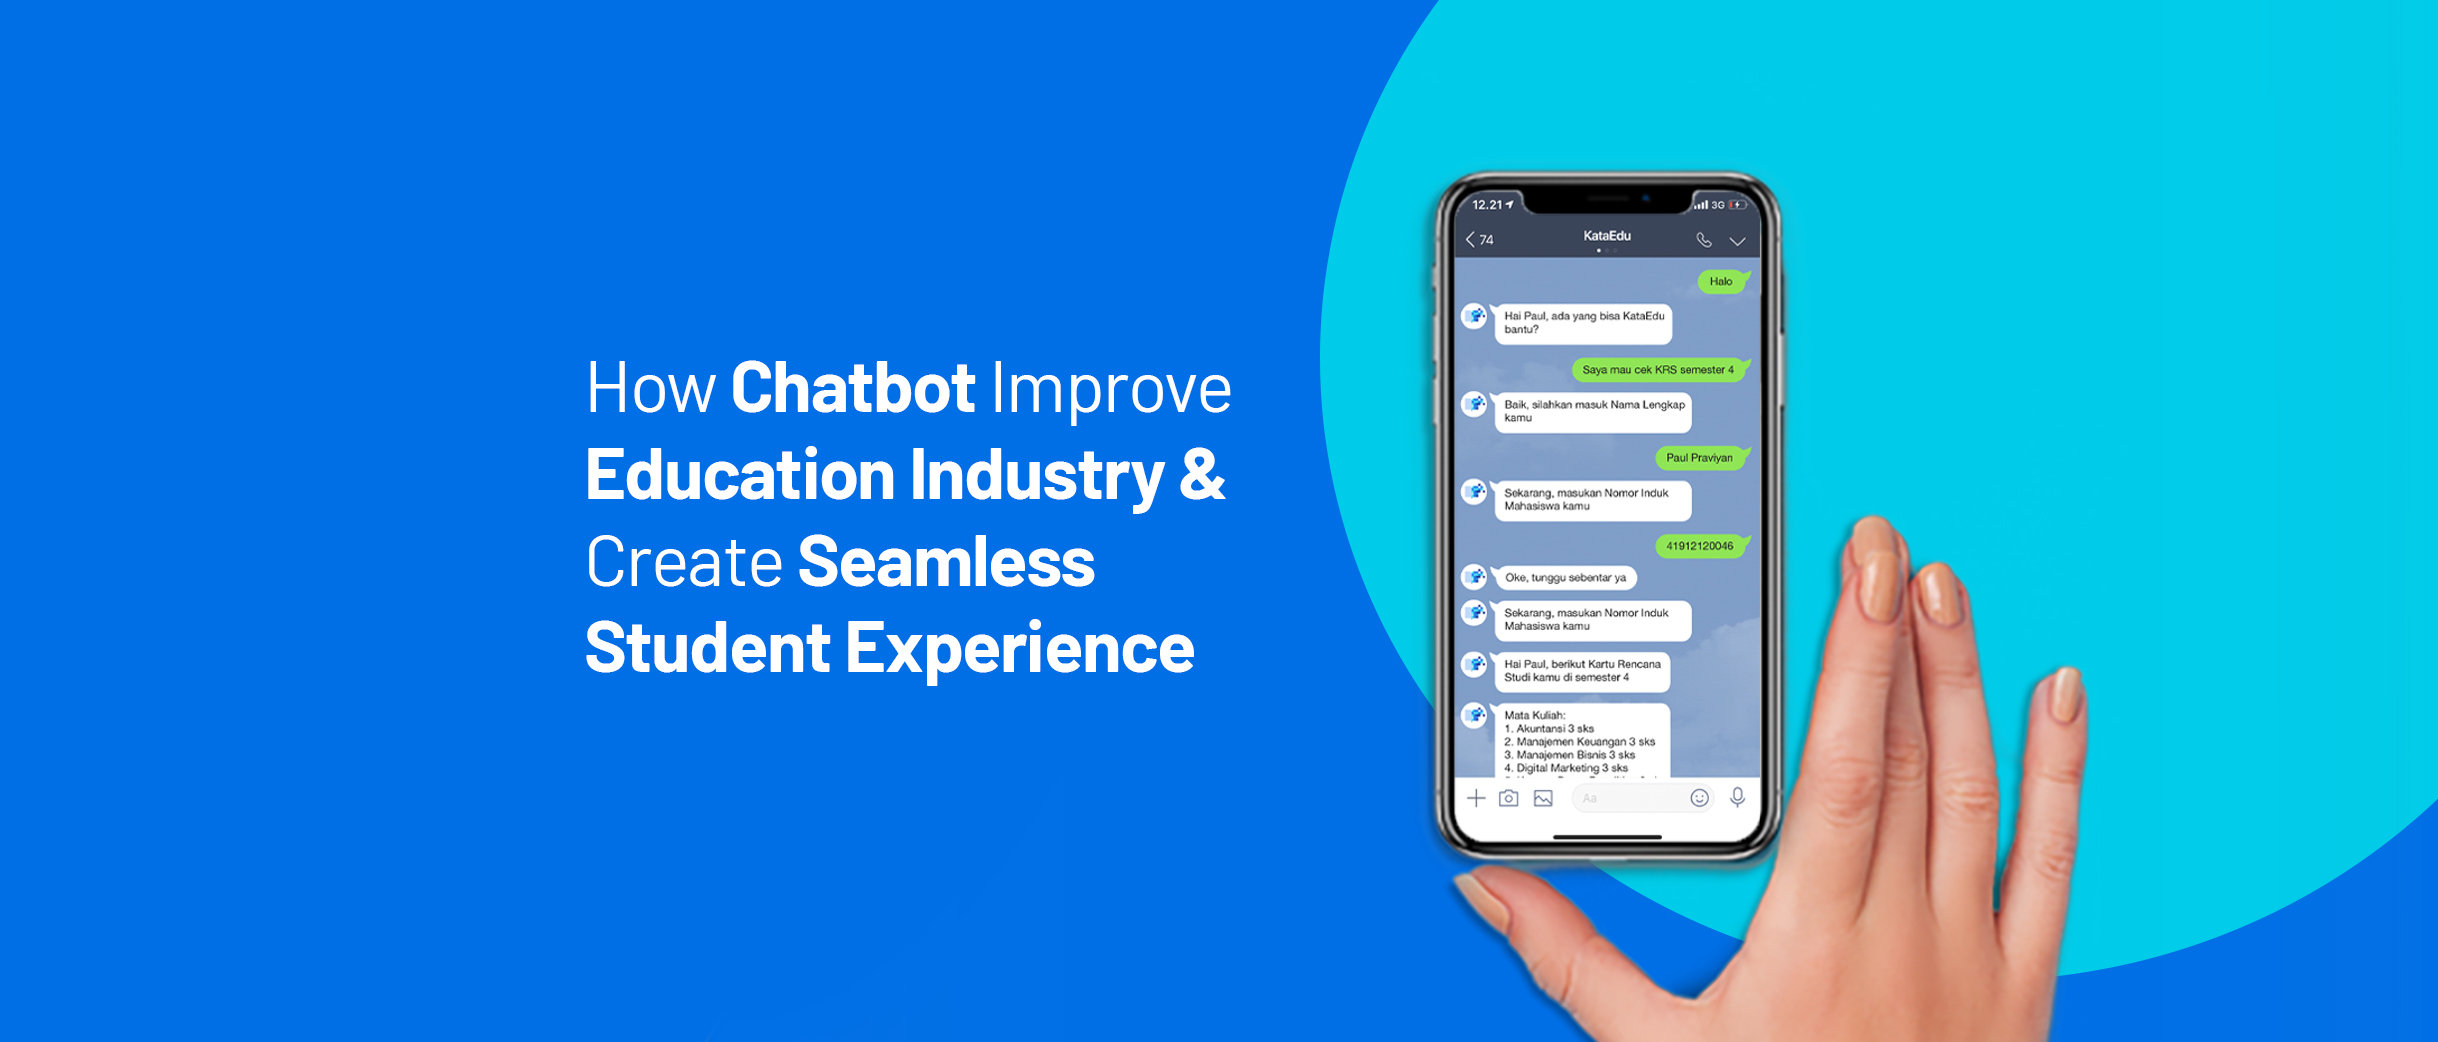 Chatbot enhances student and learning experiences.